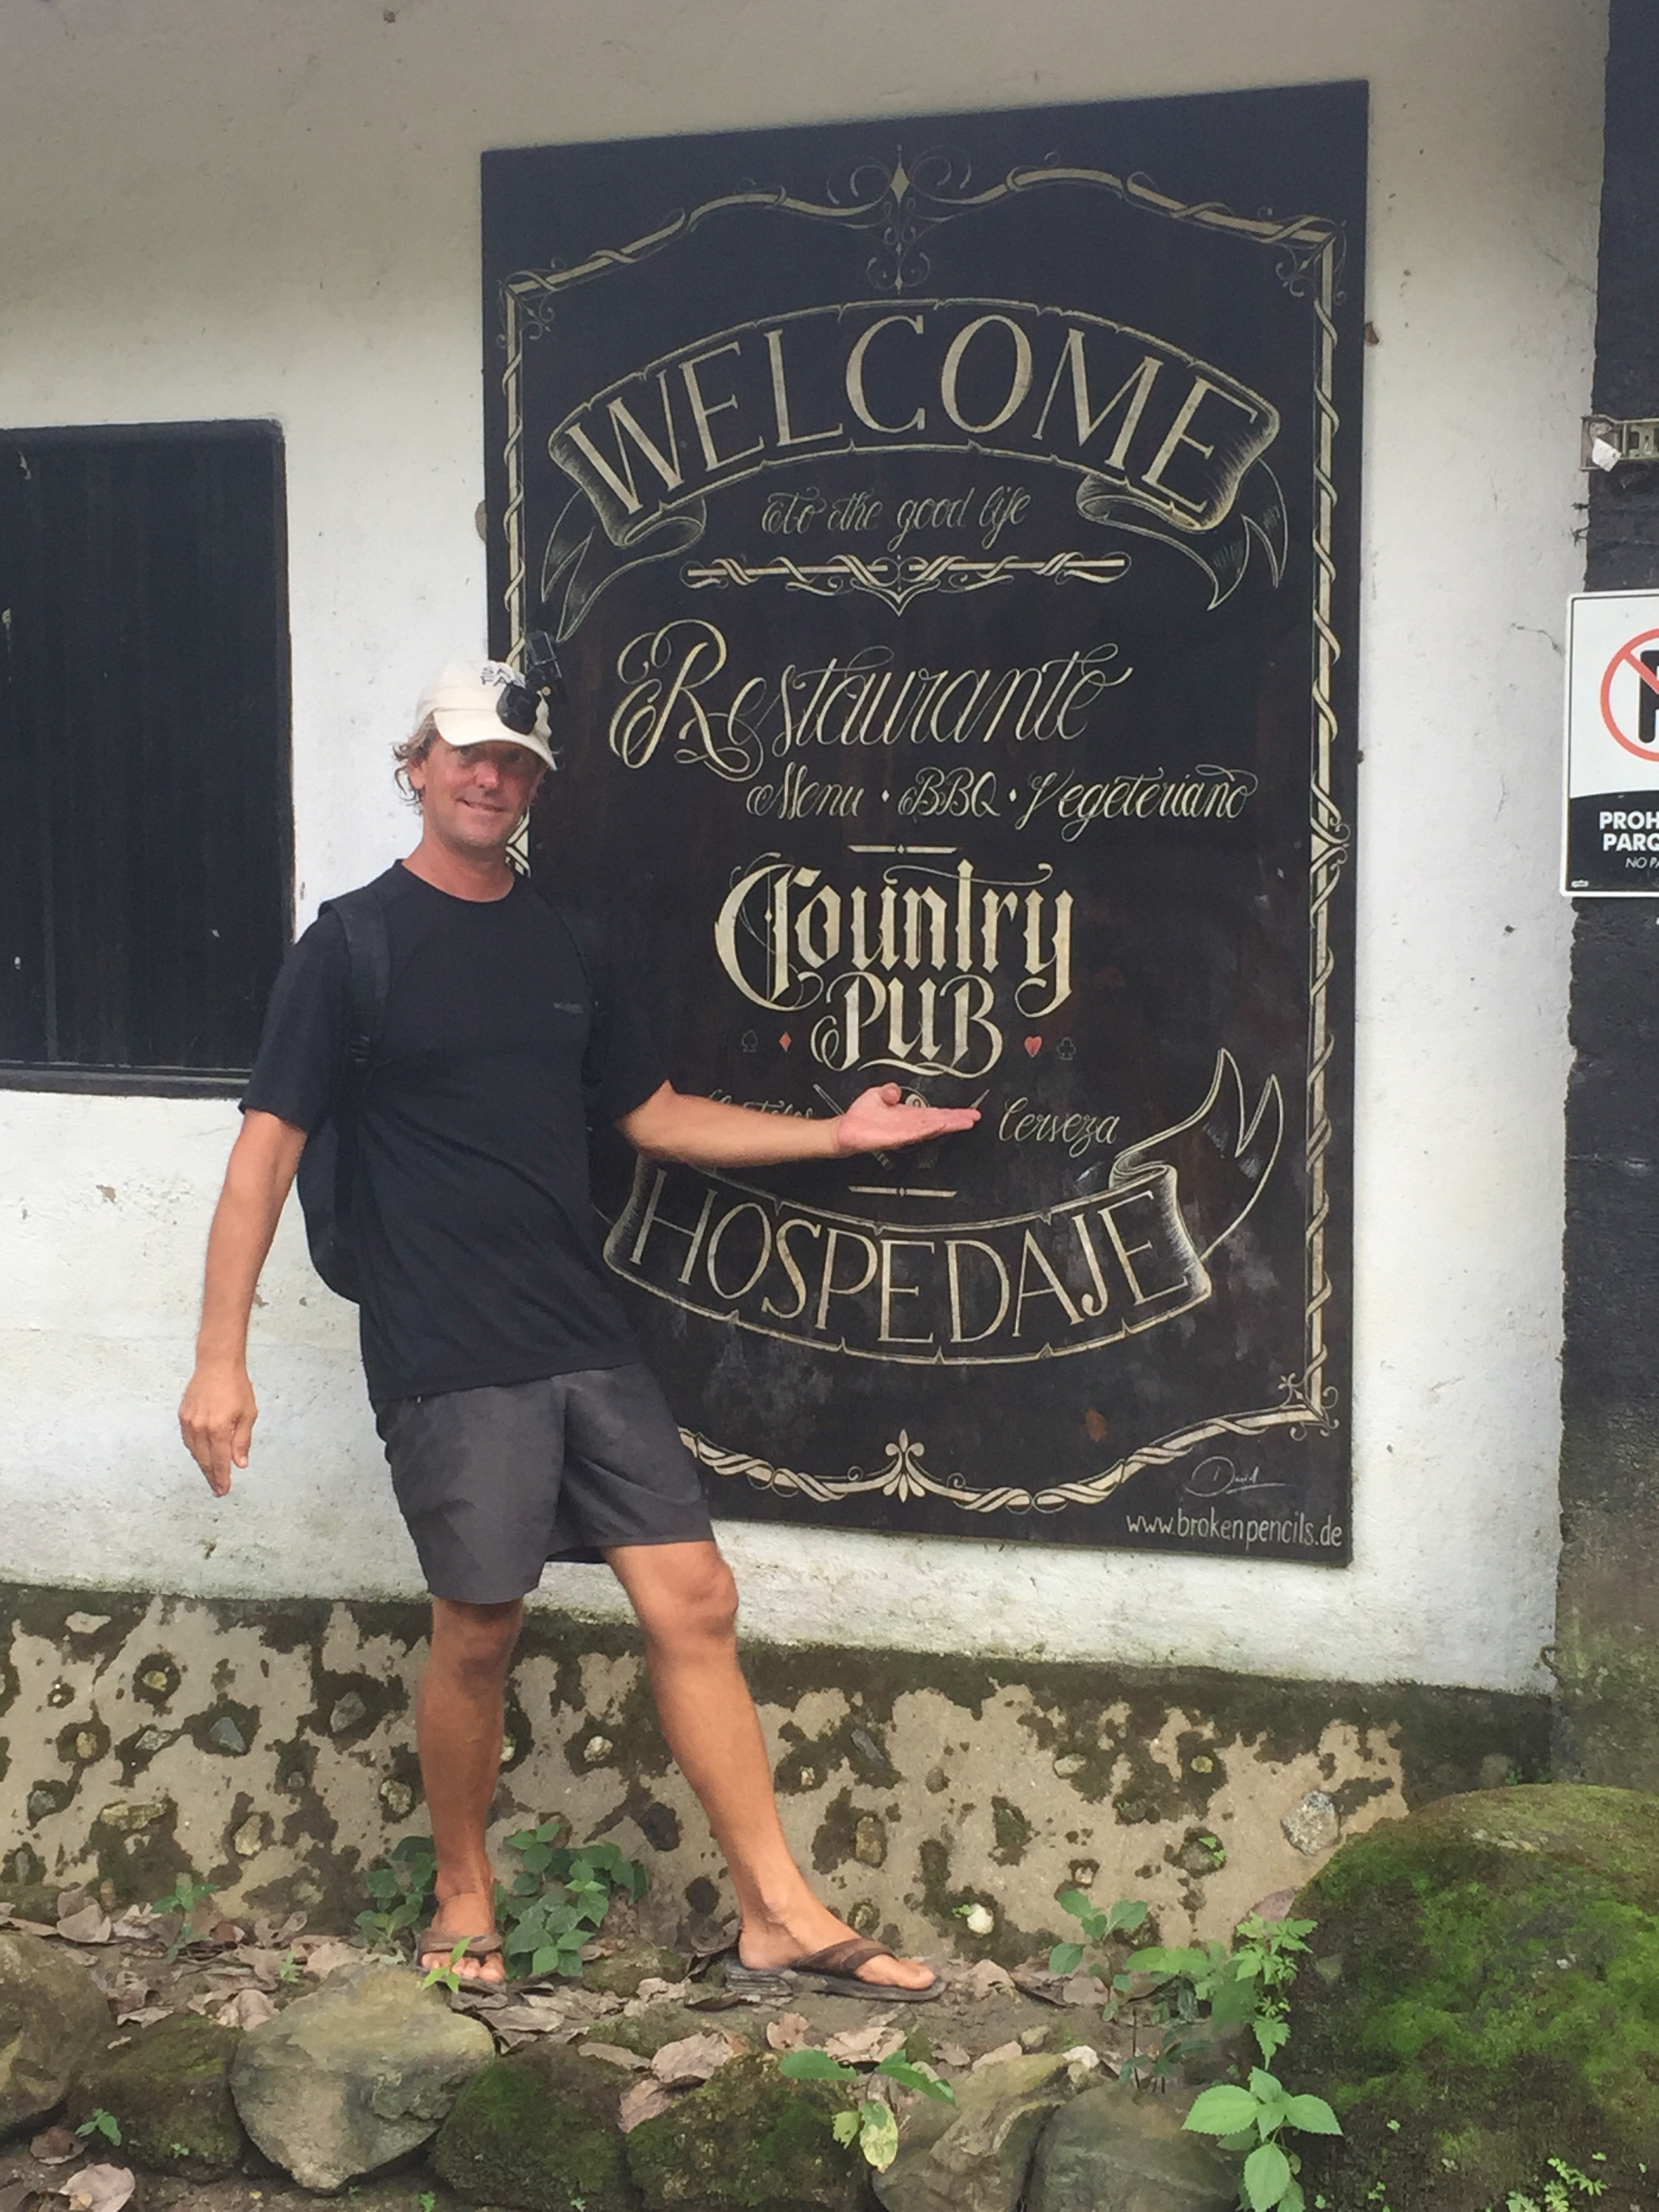 Matt found a Country Pub.